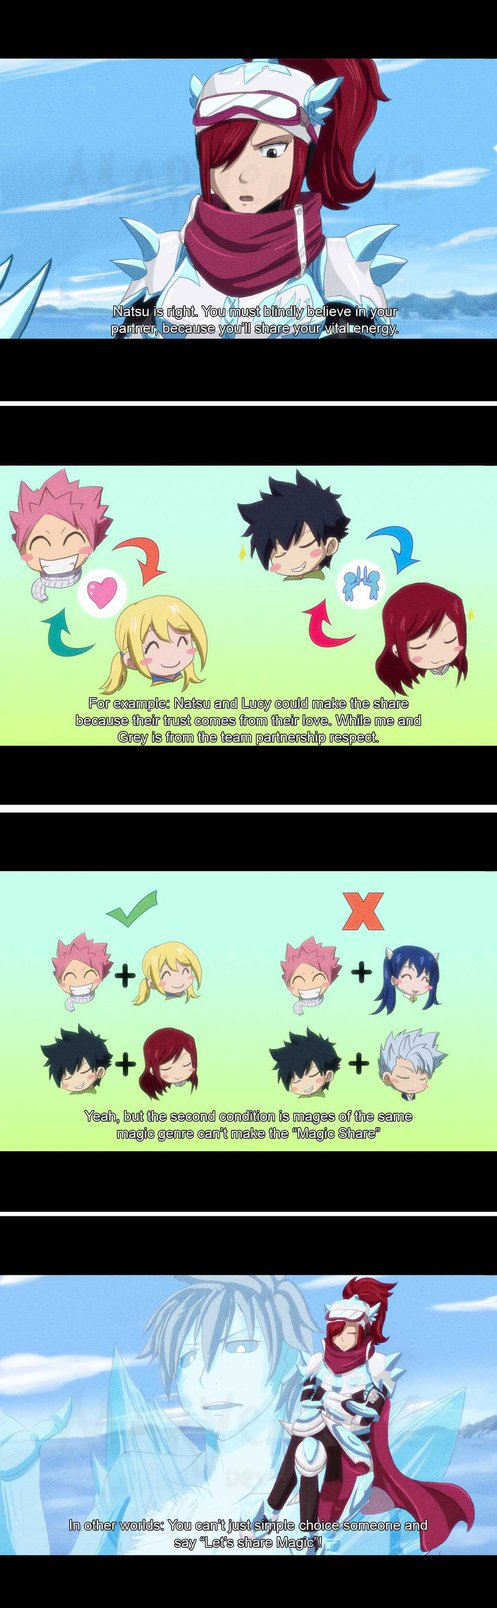 Magic Share - Part two by Maryenne042 on DeviantArt | Fairy Tail